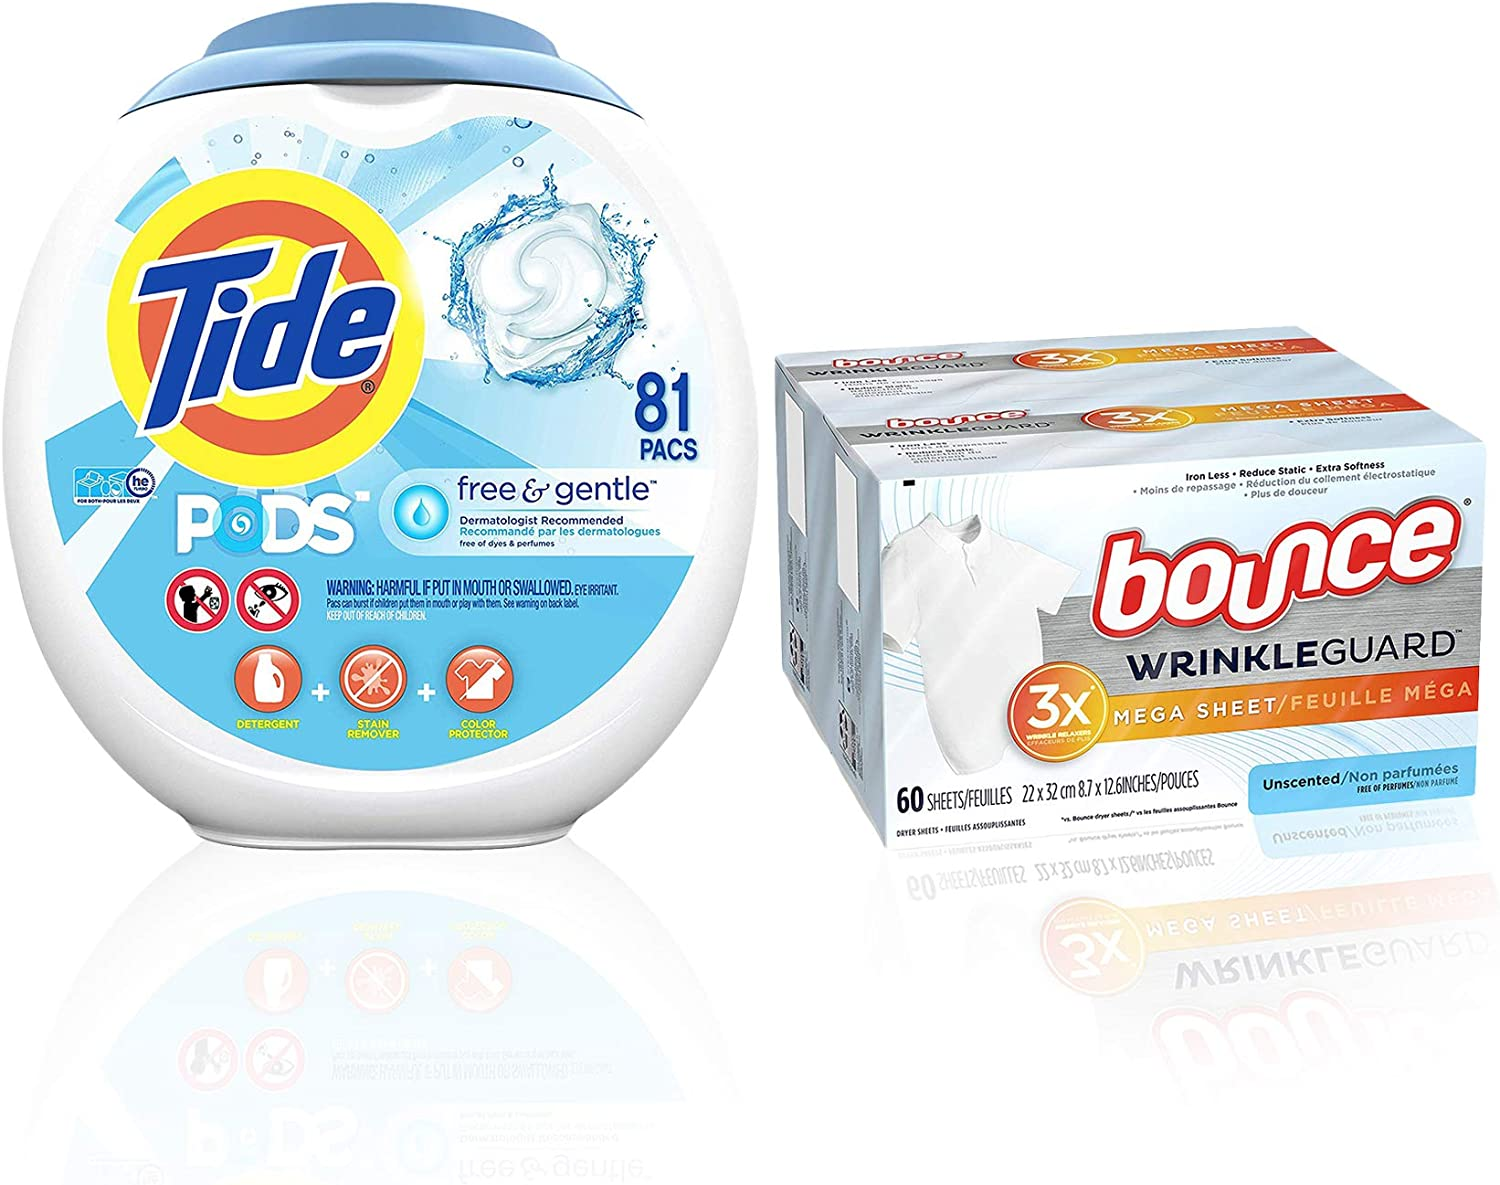 Tide Free and Gentle Laundry Detergent Pods, 81 Count with Bounce WrinkleGuard Mega Dryer Sheets, Fabric Softener and Wrinkle Releaser Sheets